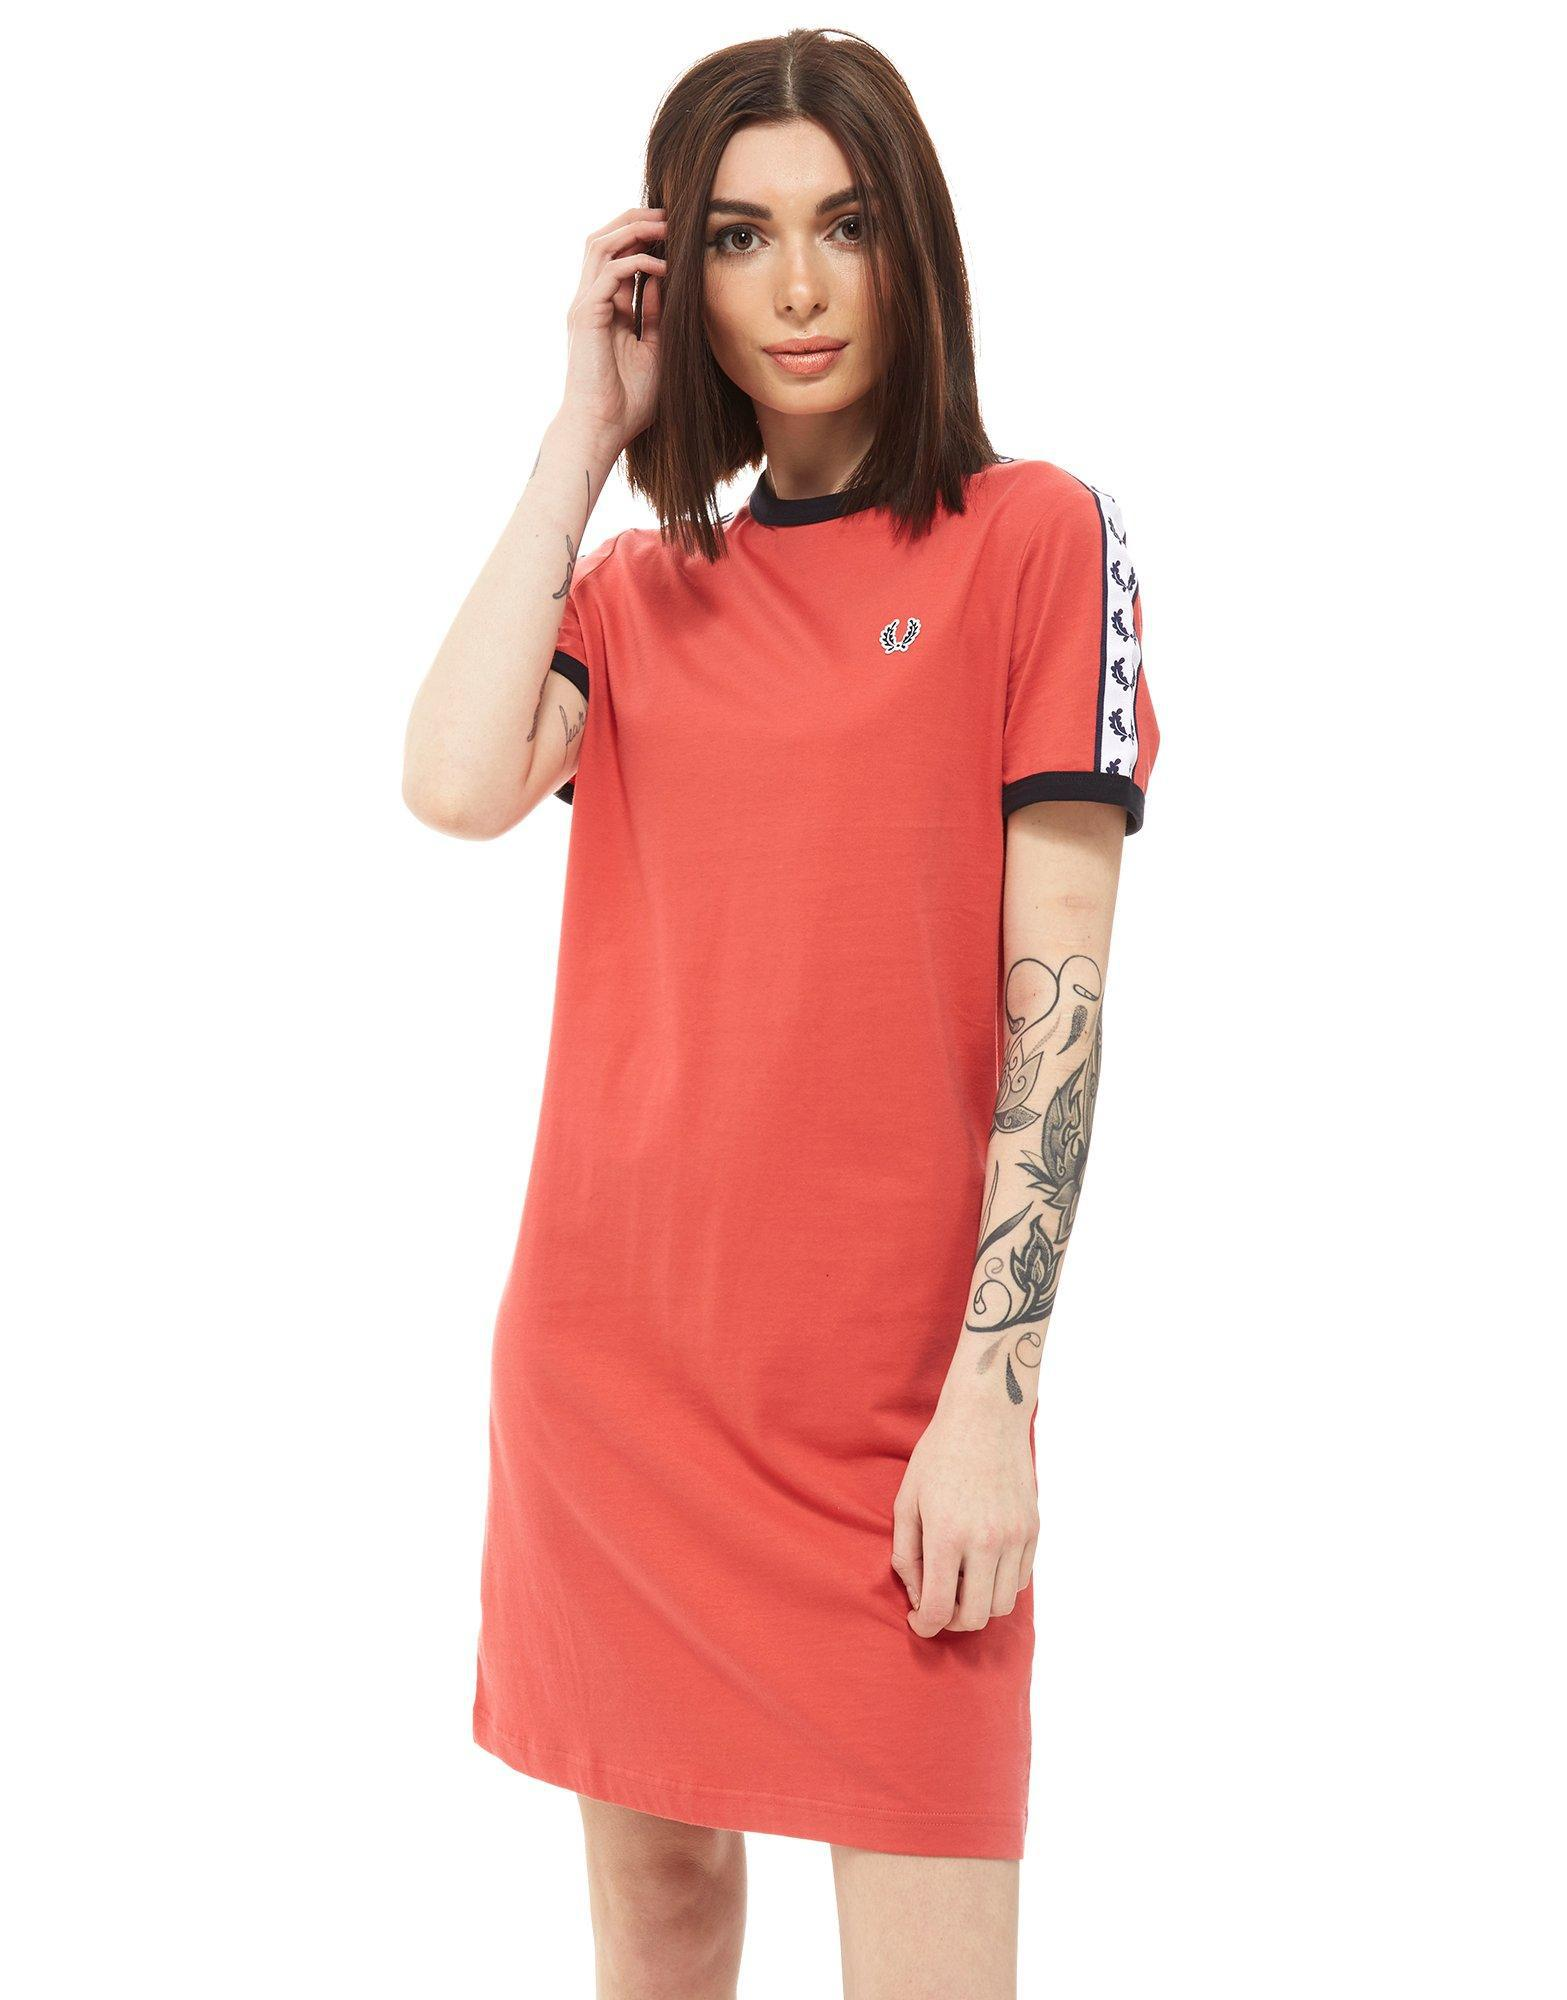 64ae3bcfb197 Fred Perry Tape Ringer Dress in Red - Lyst